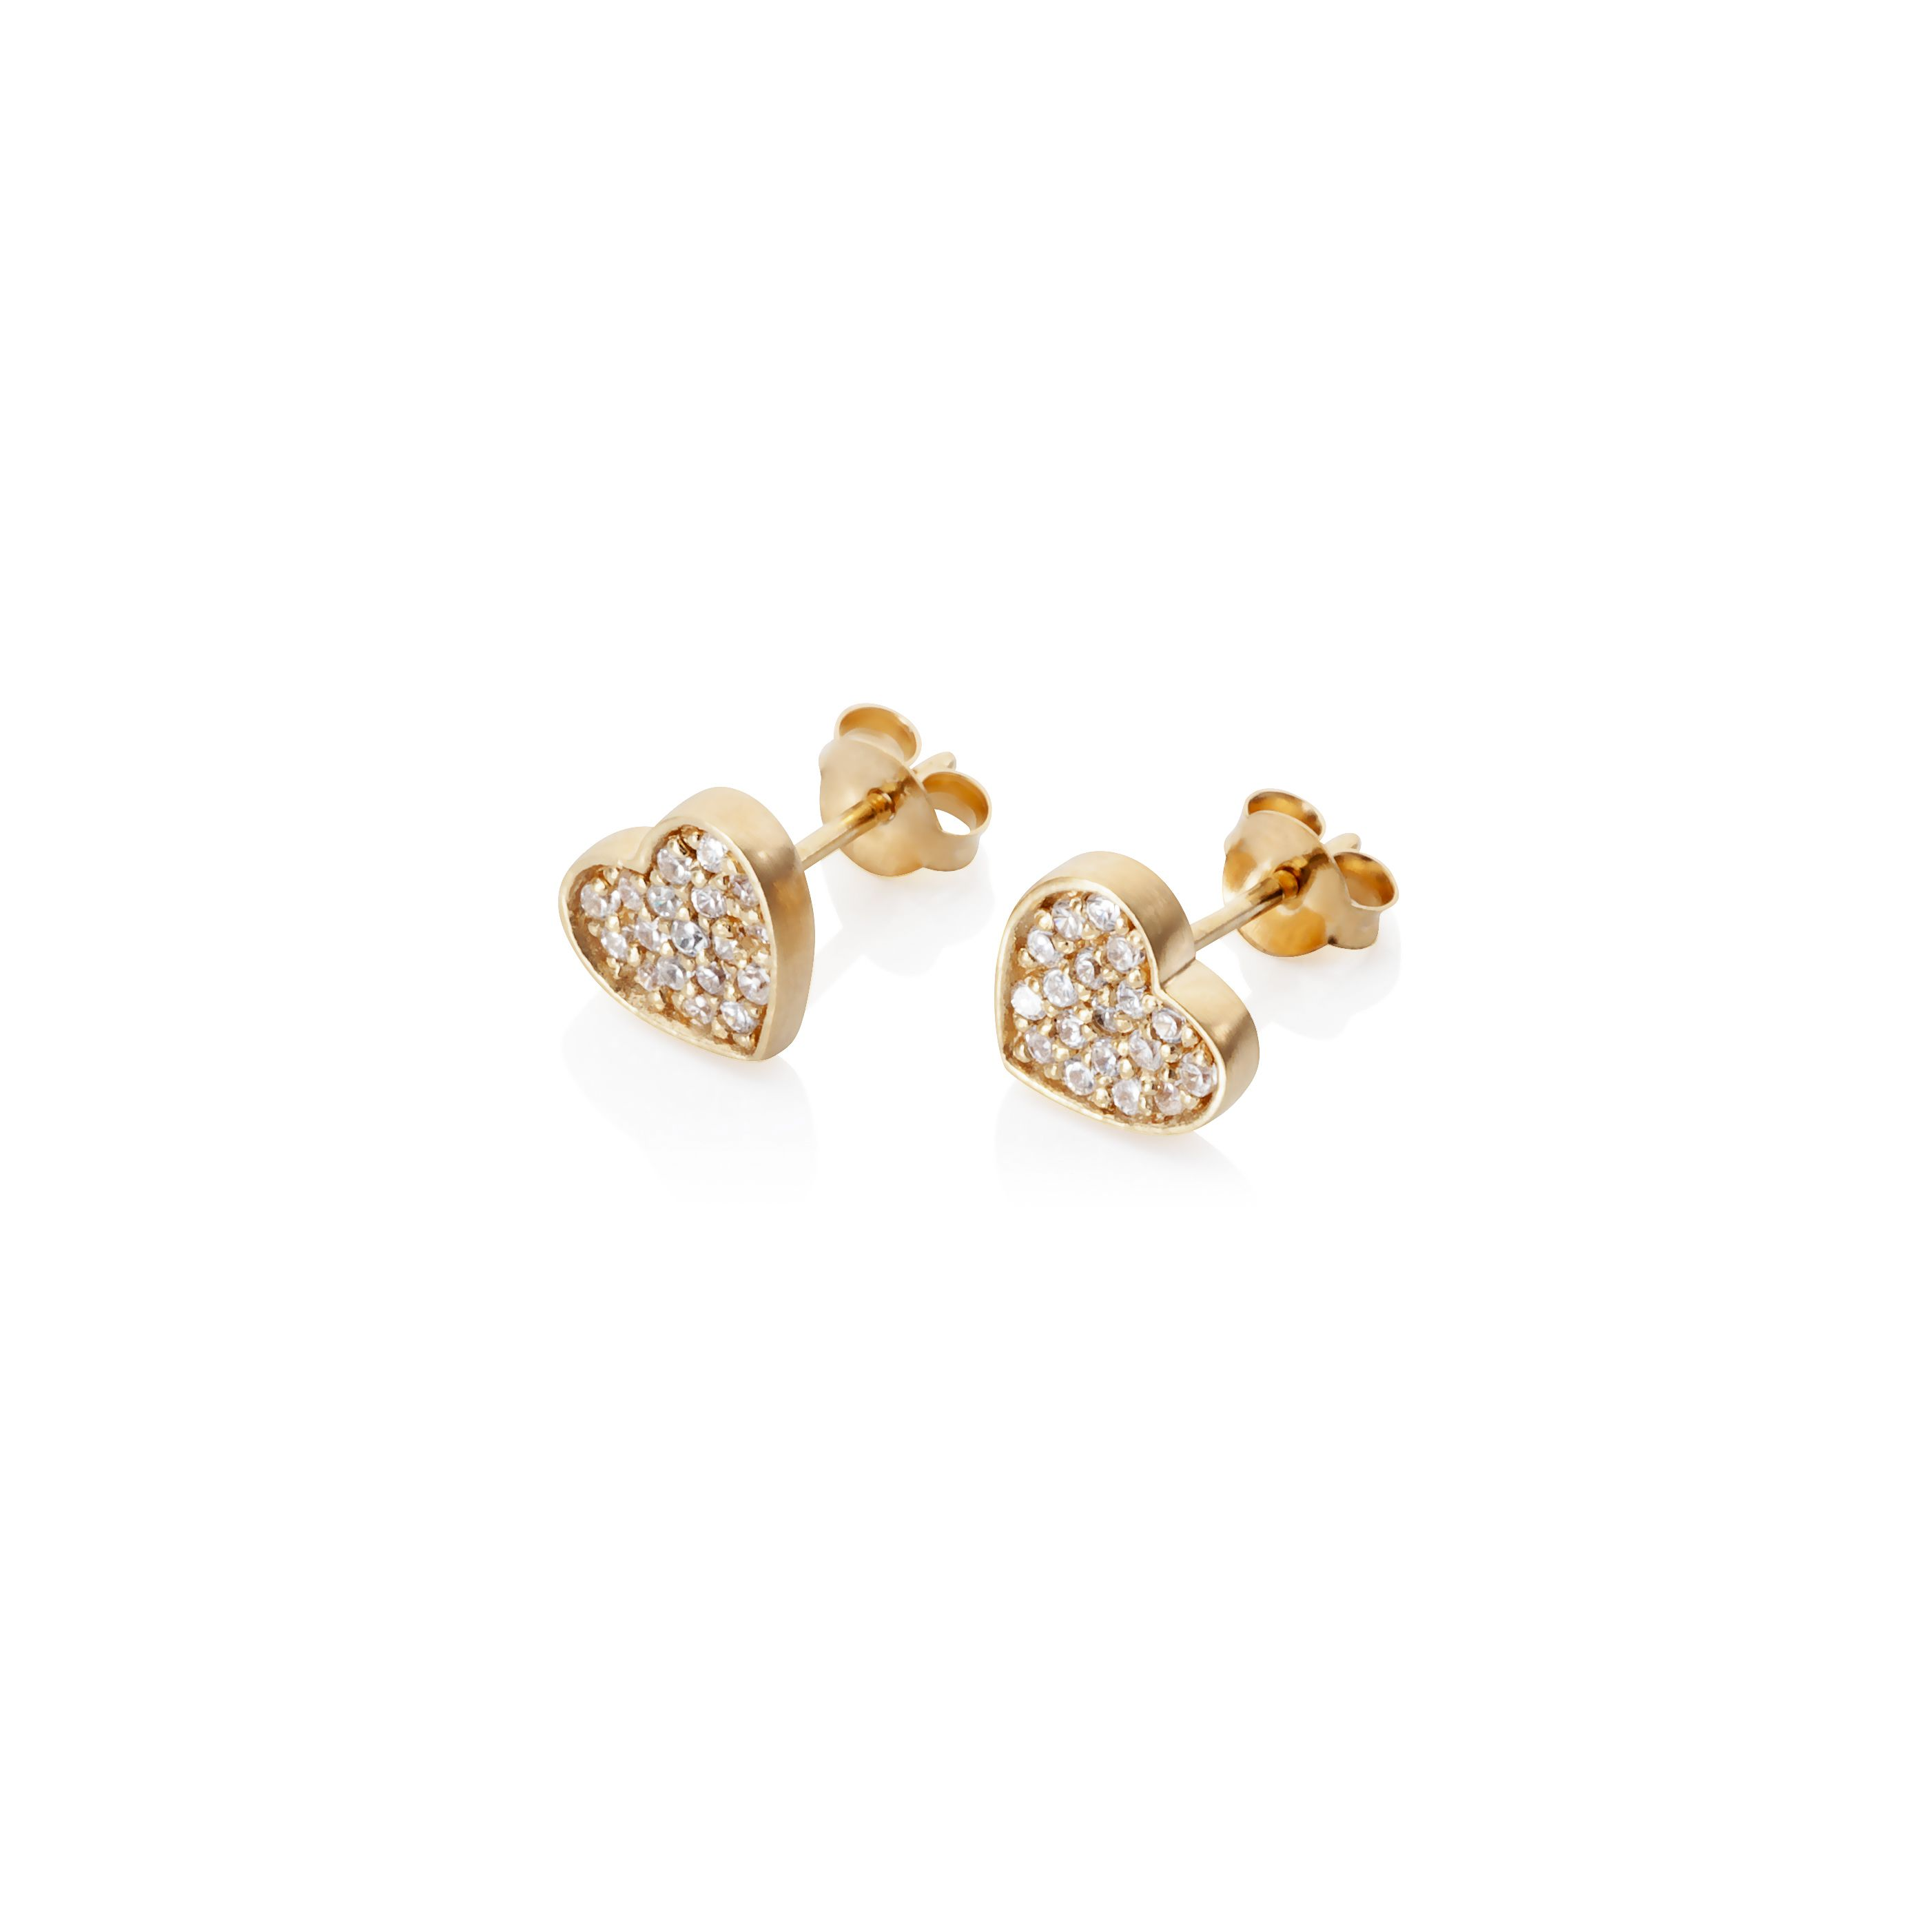 18ct gold plated sterling silver heart earrings